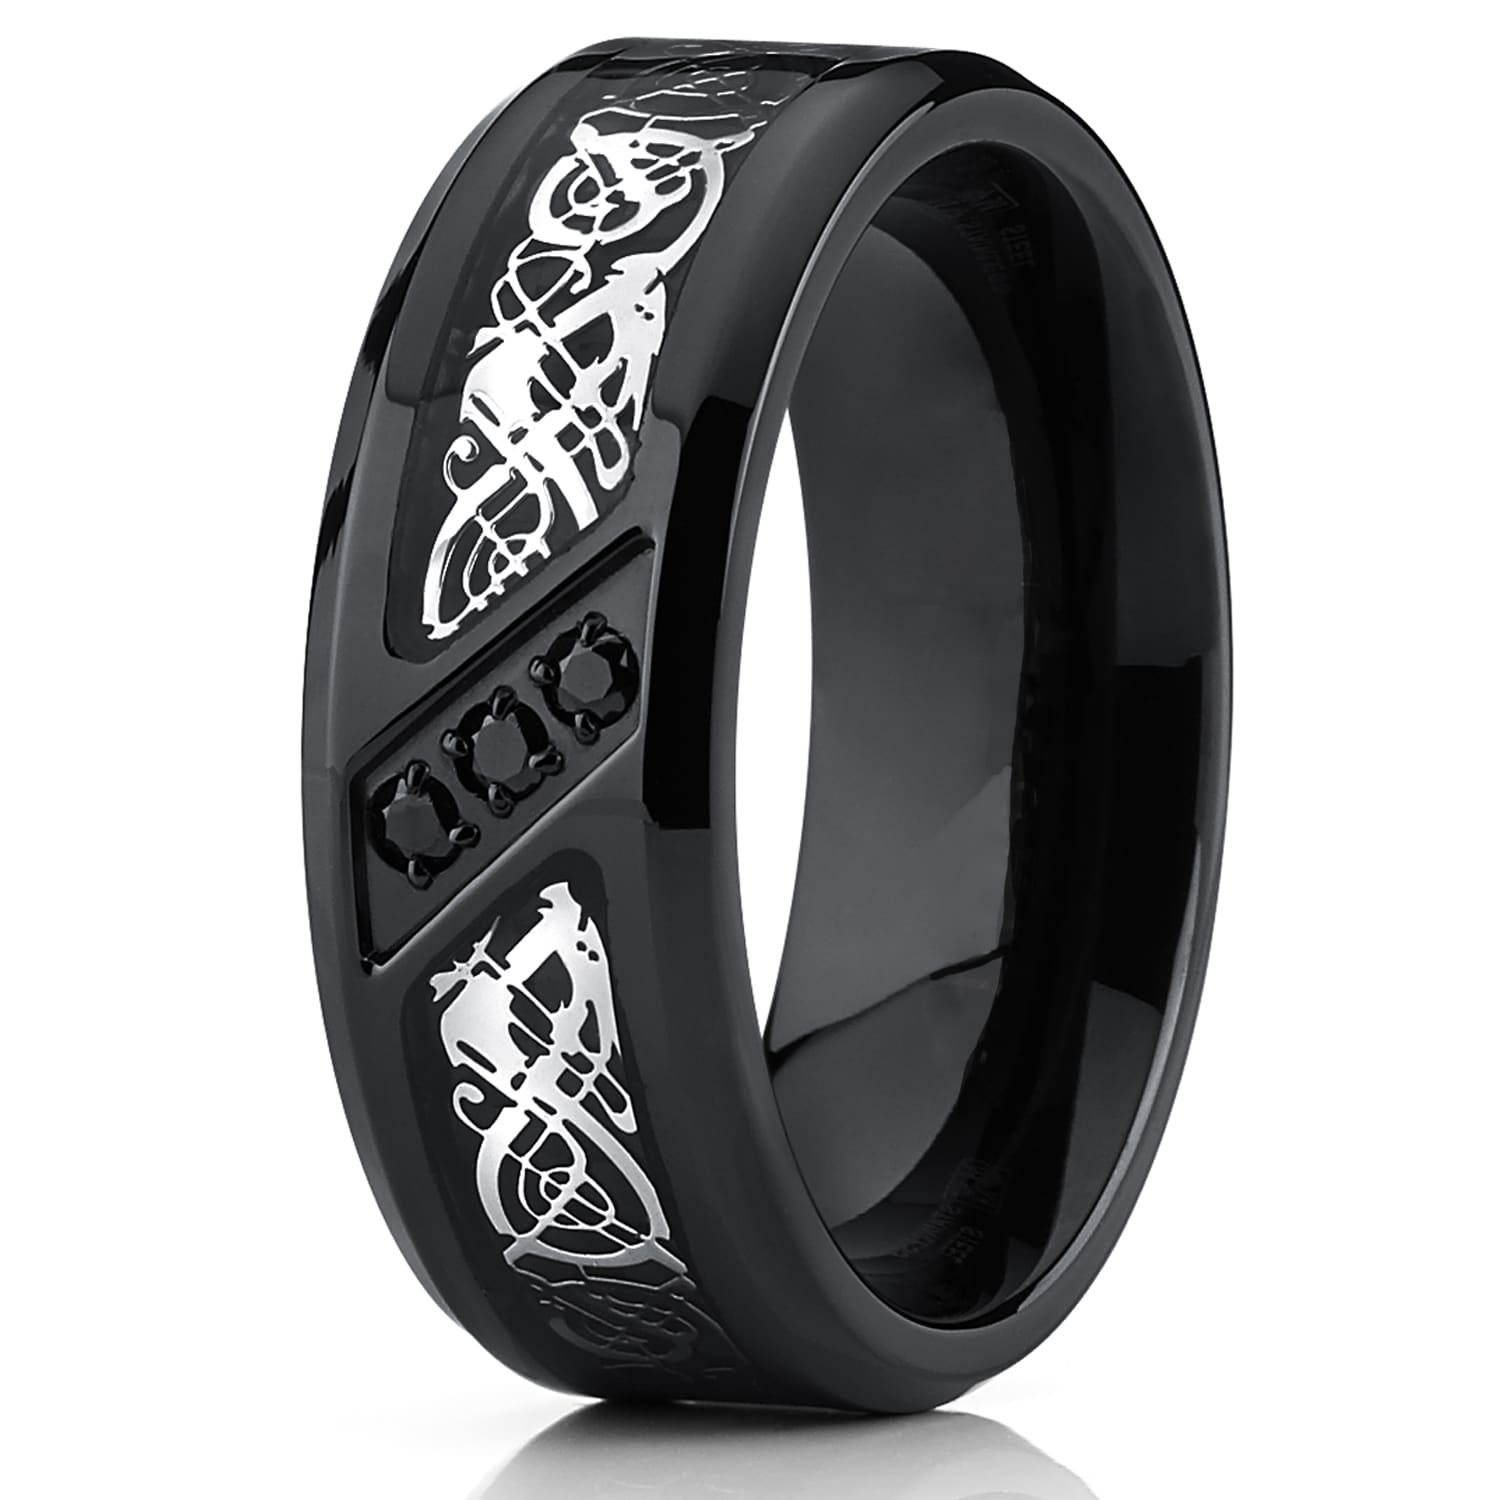 rings of pin set titanium fiber carbon unique bands modern two black resistant water and hypoallergenic wedding